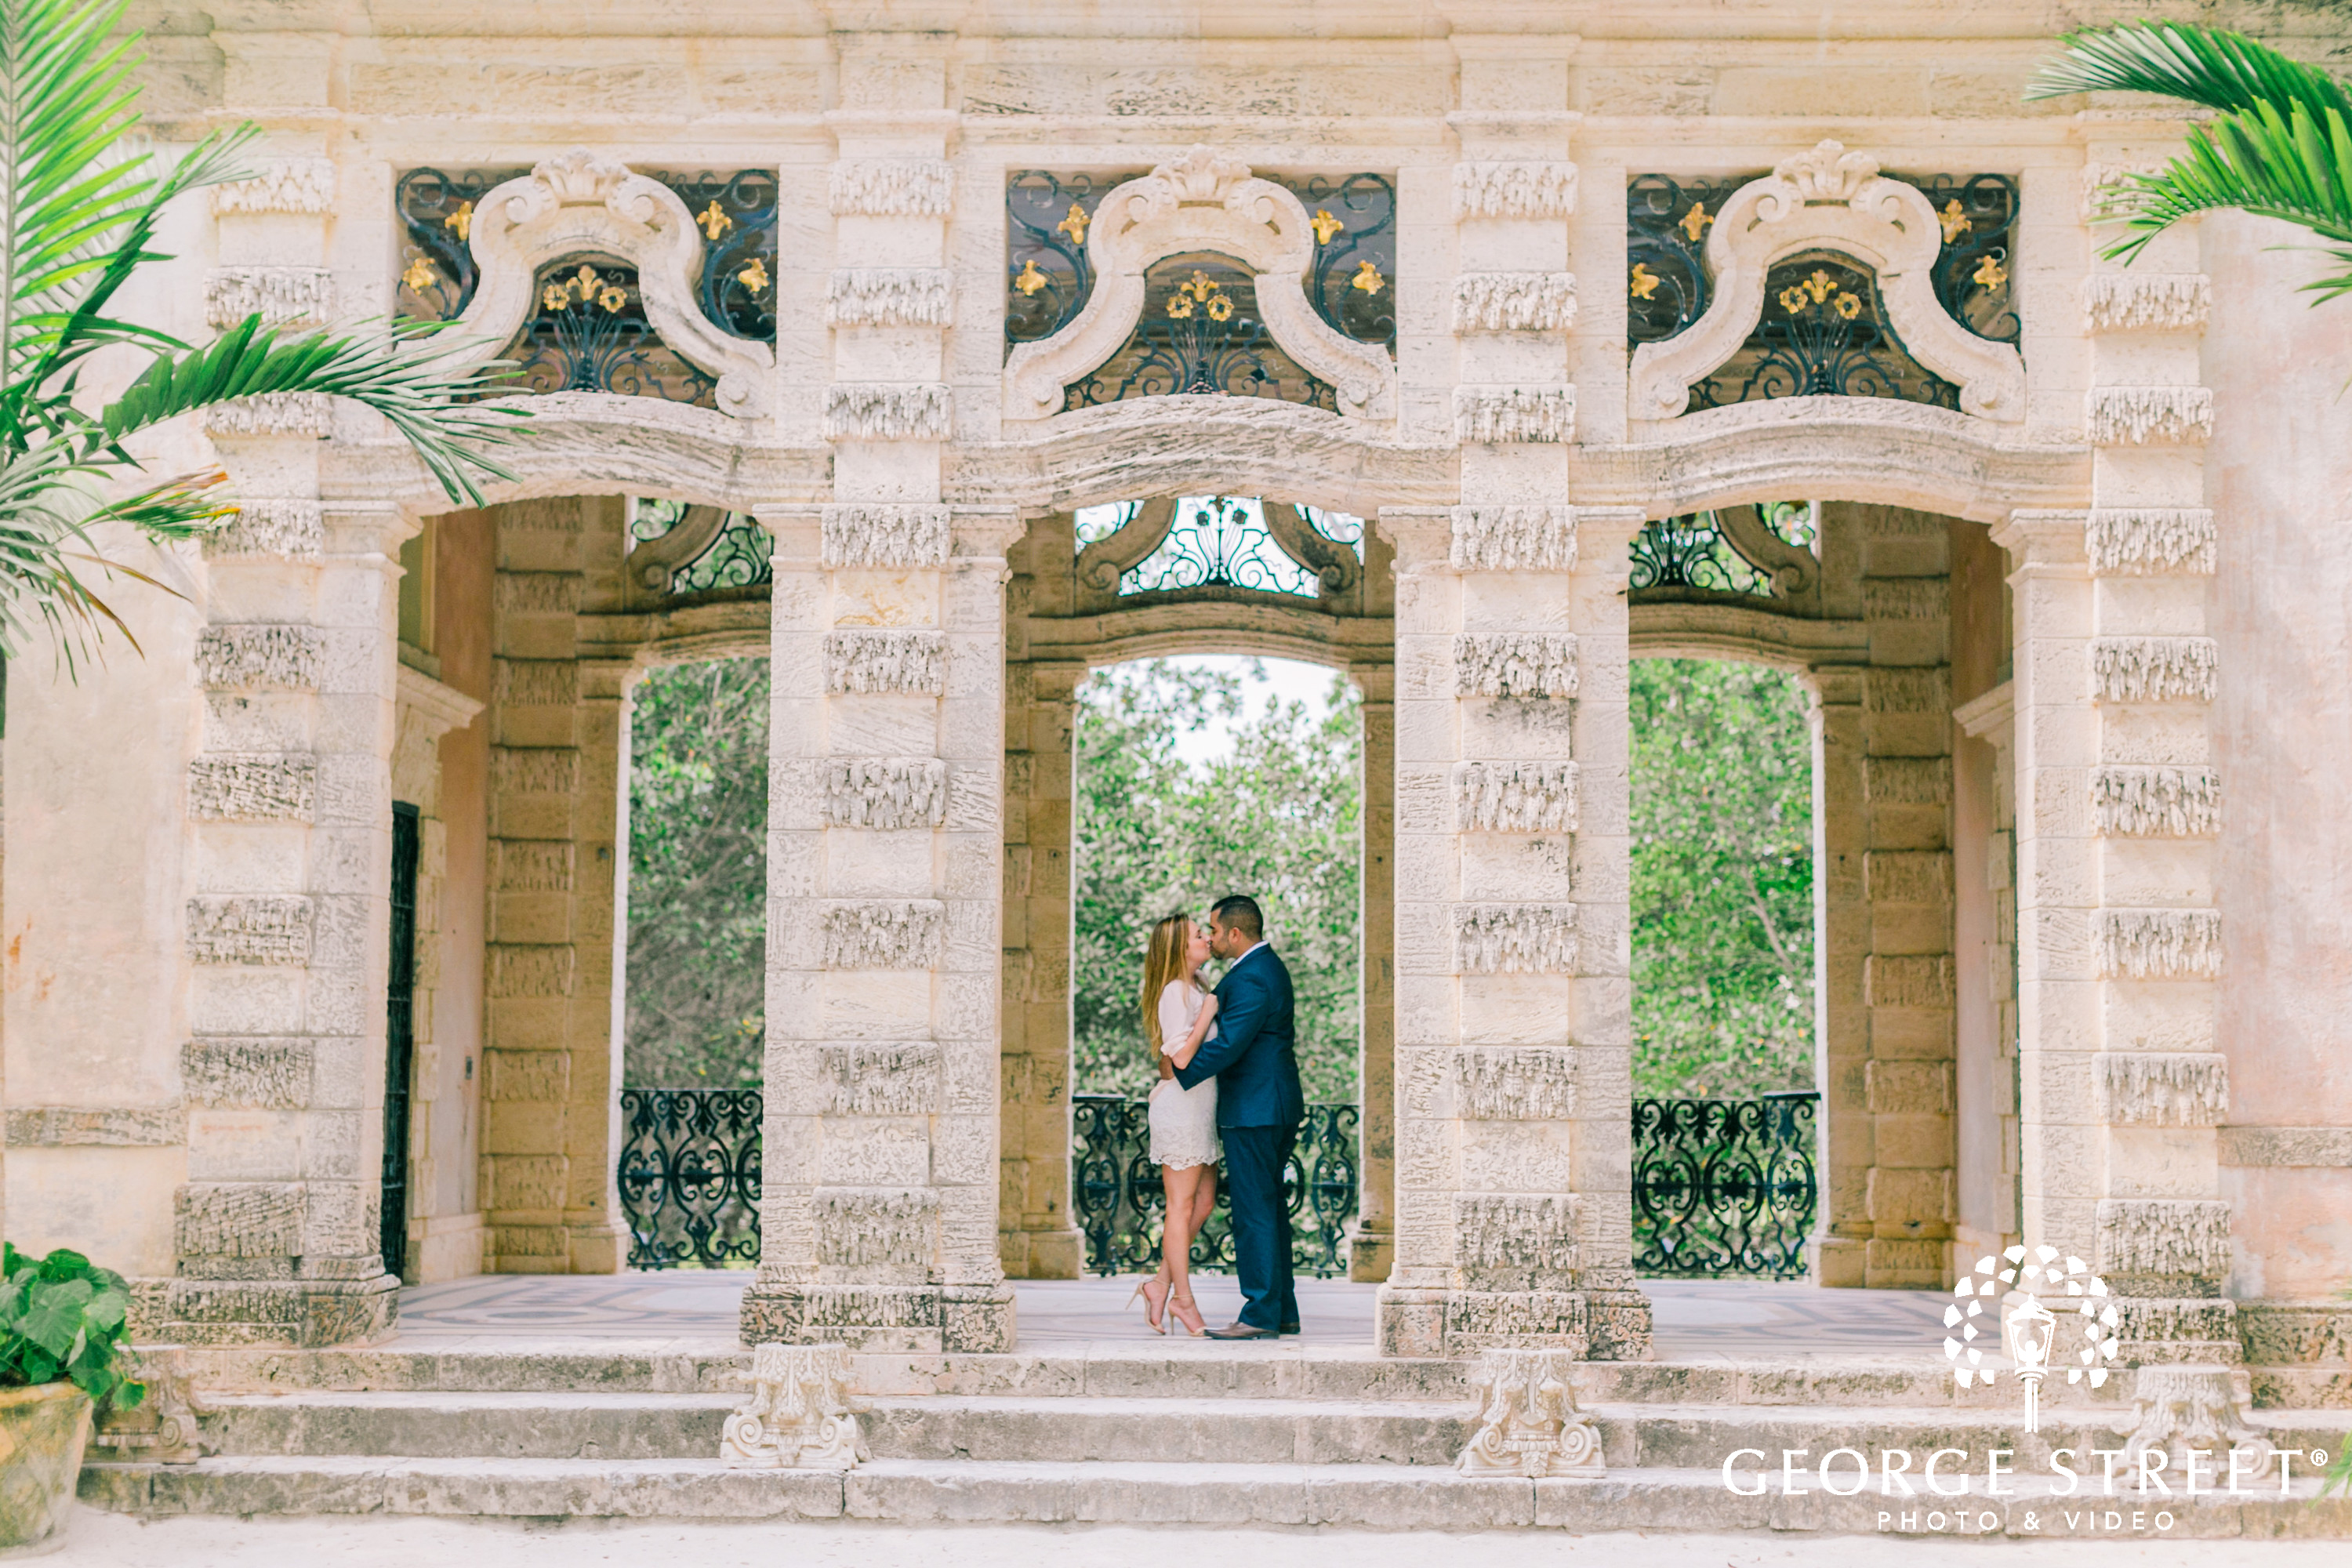 George Street's Top 5 Engagement Session Locations in Miami